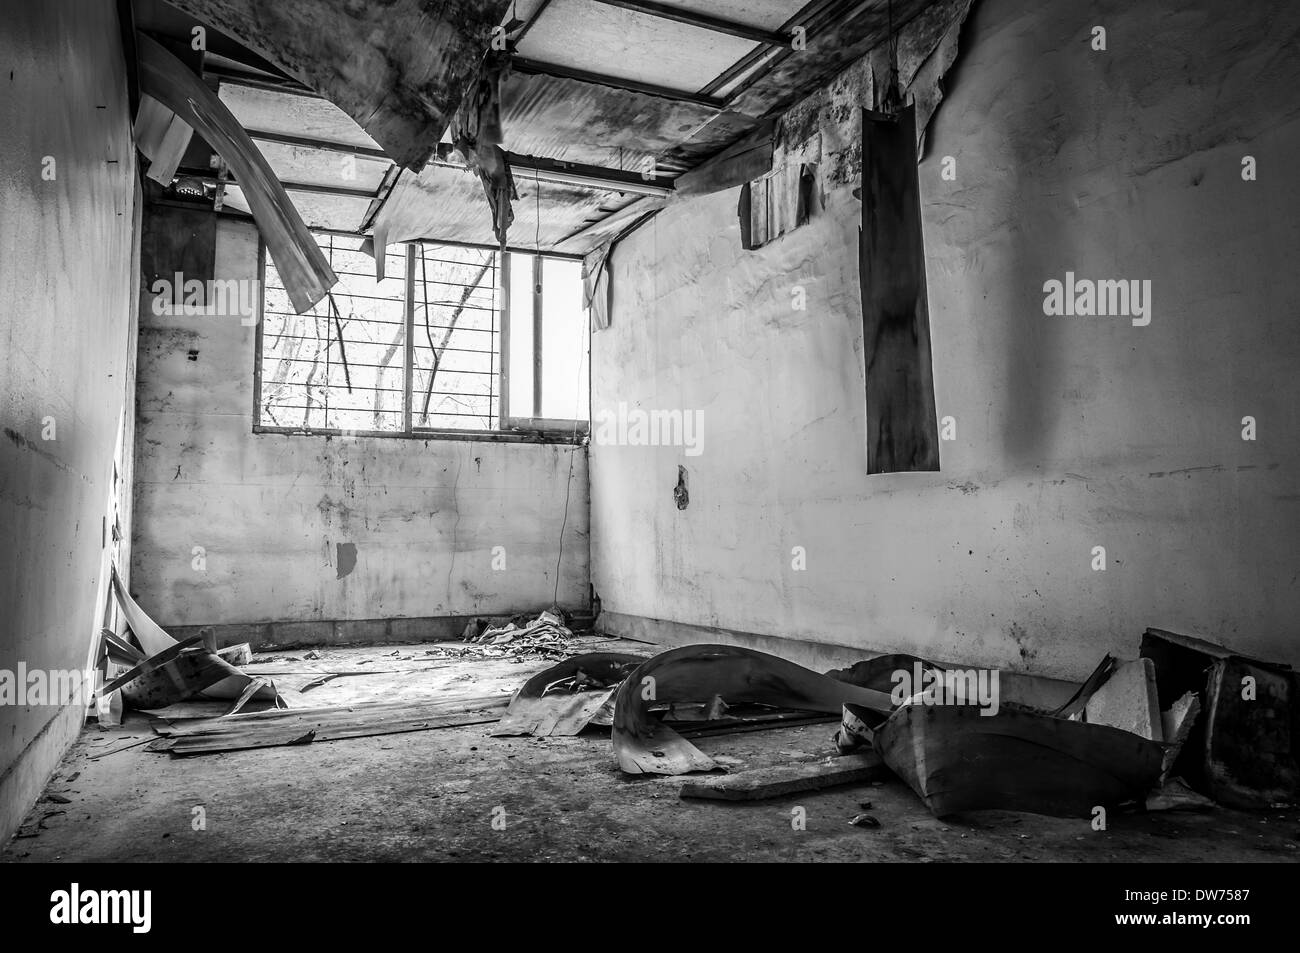 Gonjiam psychiatric hospital in South Korea. The hospital was abandoned nearly twenty years ago. - Stock Image